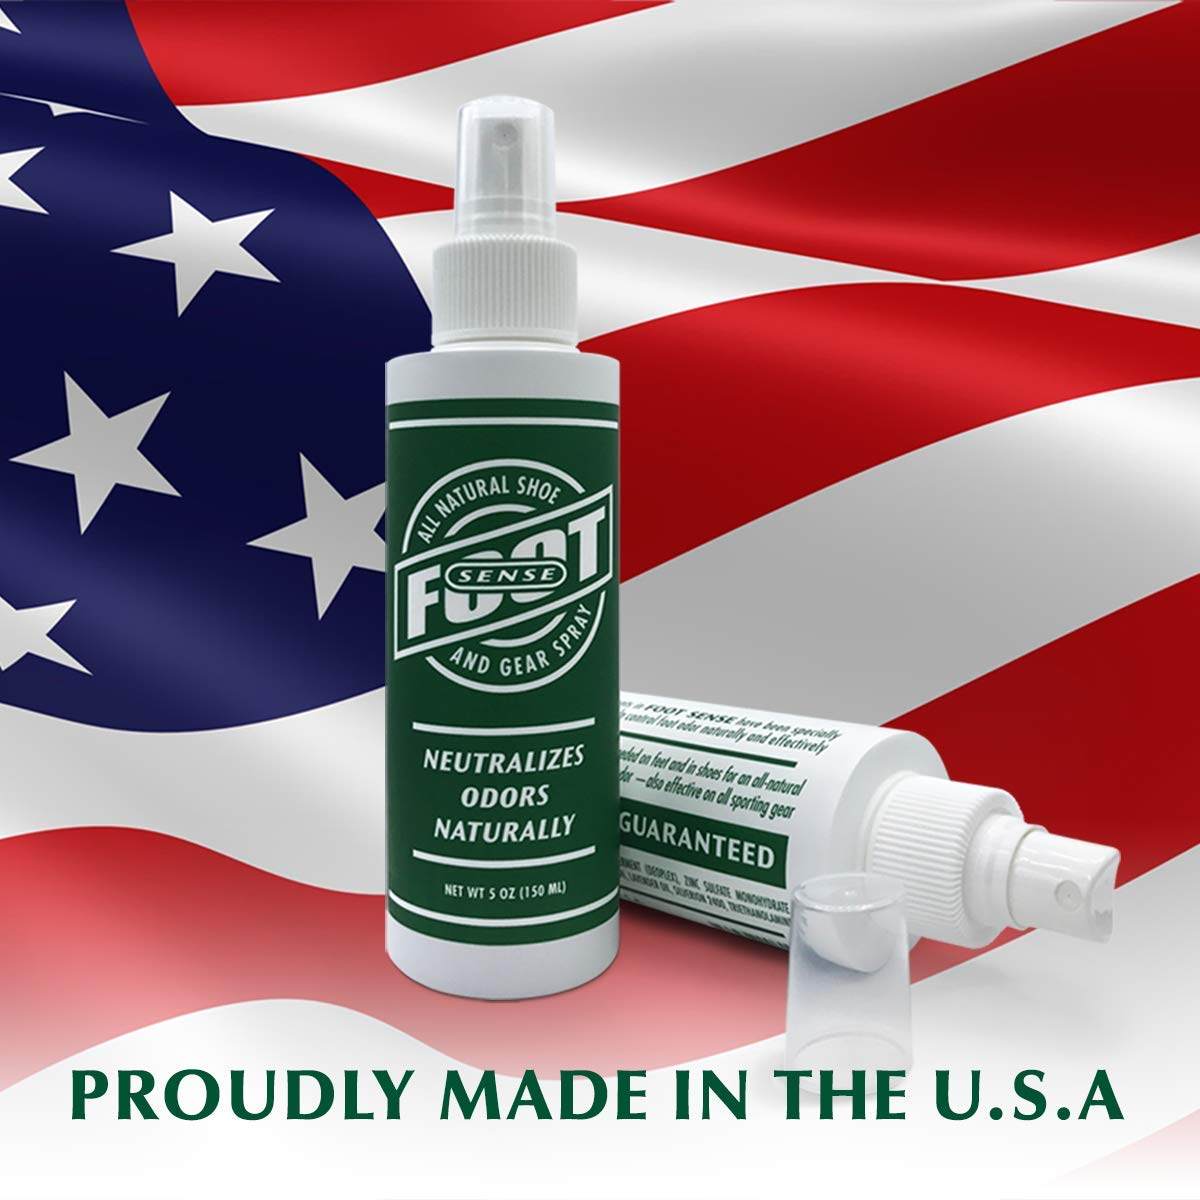 Natural Shoe Deodorizer & Gear Spray - Foot Odor Eliminator - Eliminates Smells Naturally. Use on Stinky Shoes, Gear, Smelly feet and Household Odors. Made in USA